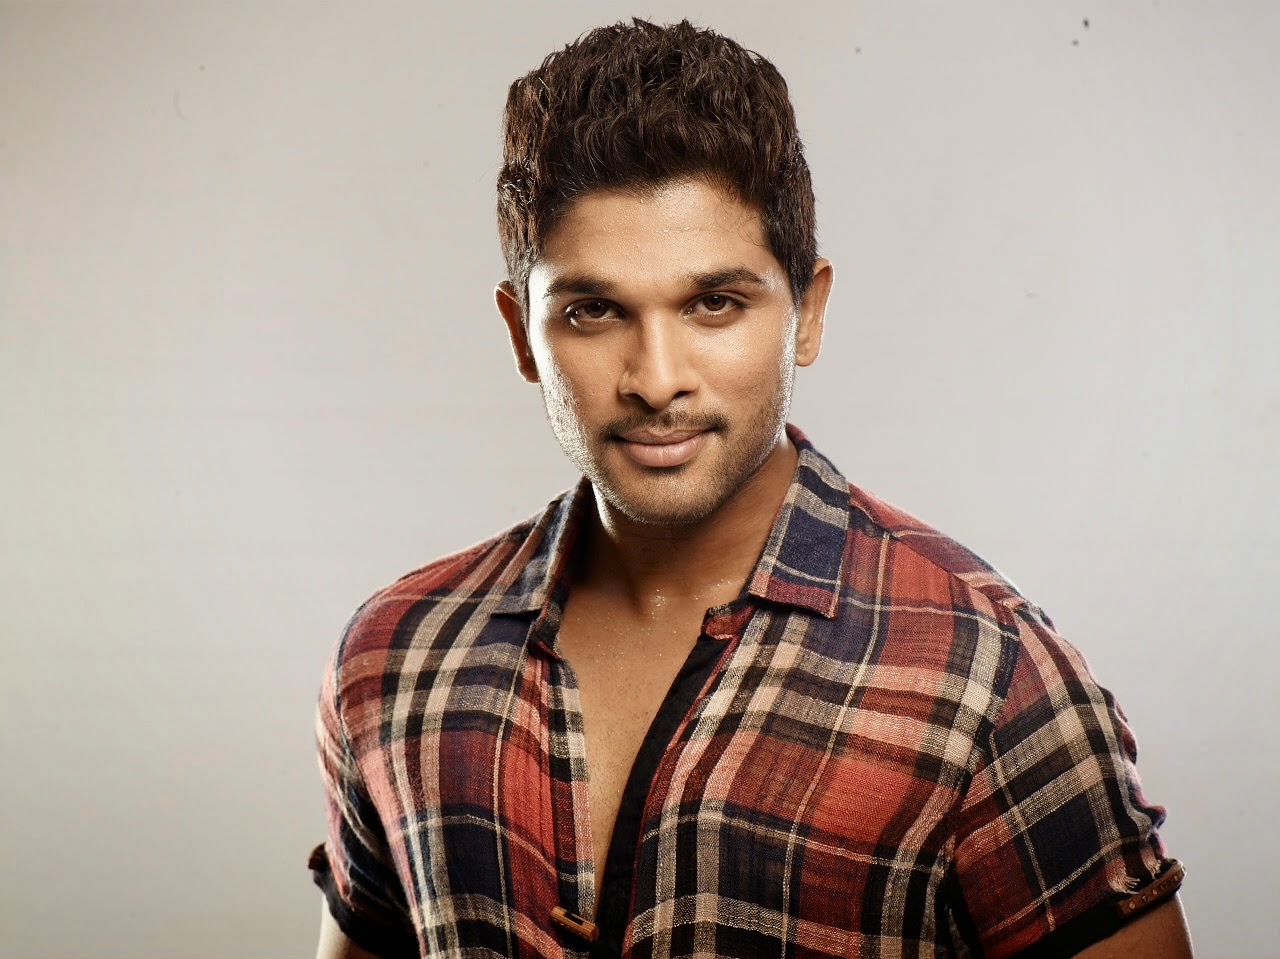 Allu Arjun Wallpapers | Download Free High Definition Desktop ...